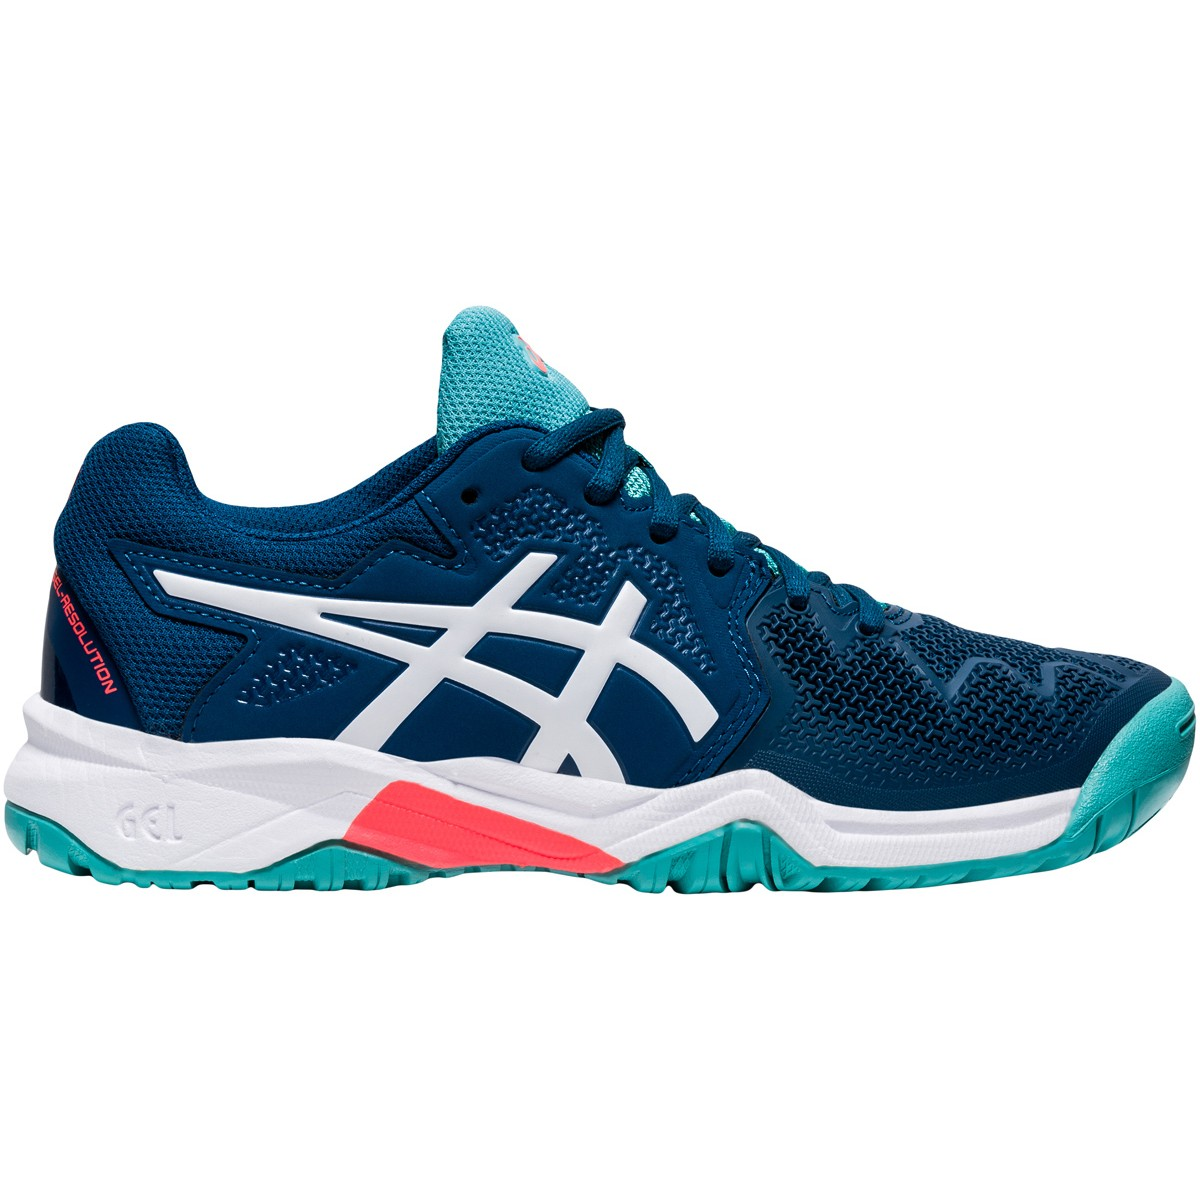 JUNIOR ASICS GEL RESOLUTION GS ALL COURT SHOES